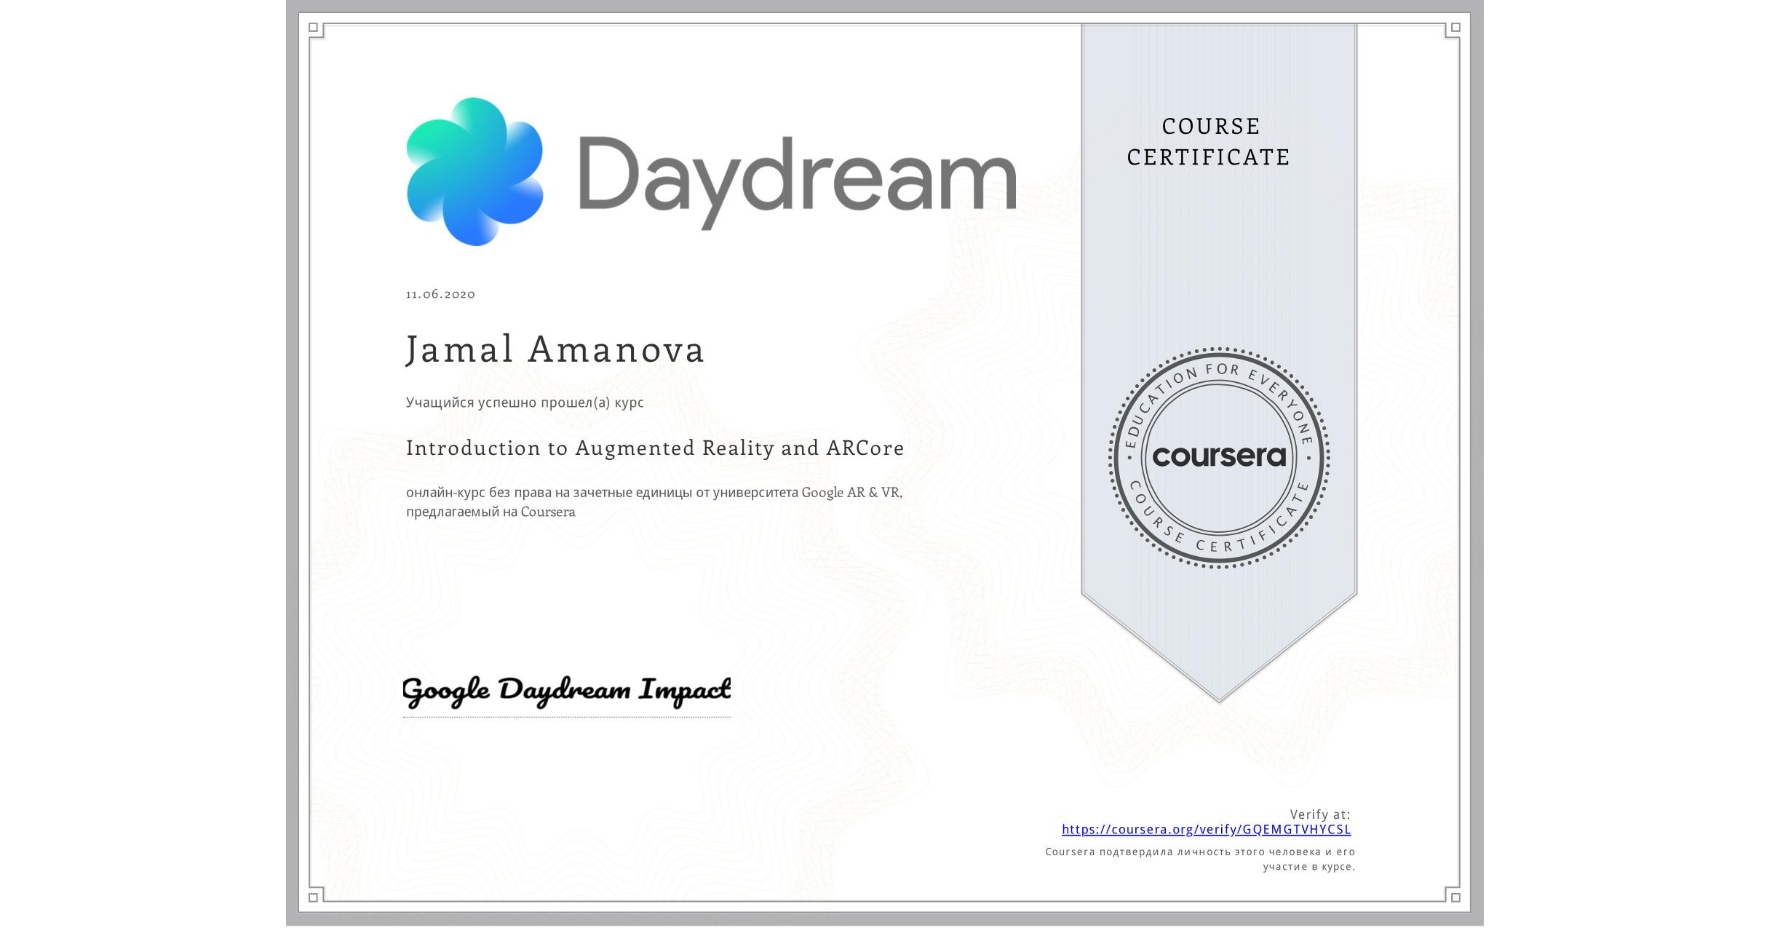 View certificate for Jamal Amanova, Introduction to Augmented Reality and ARCore, an online non-credit course authorized by Google AR & VR and offered through Coursera